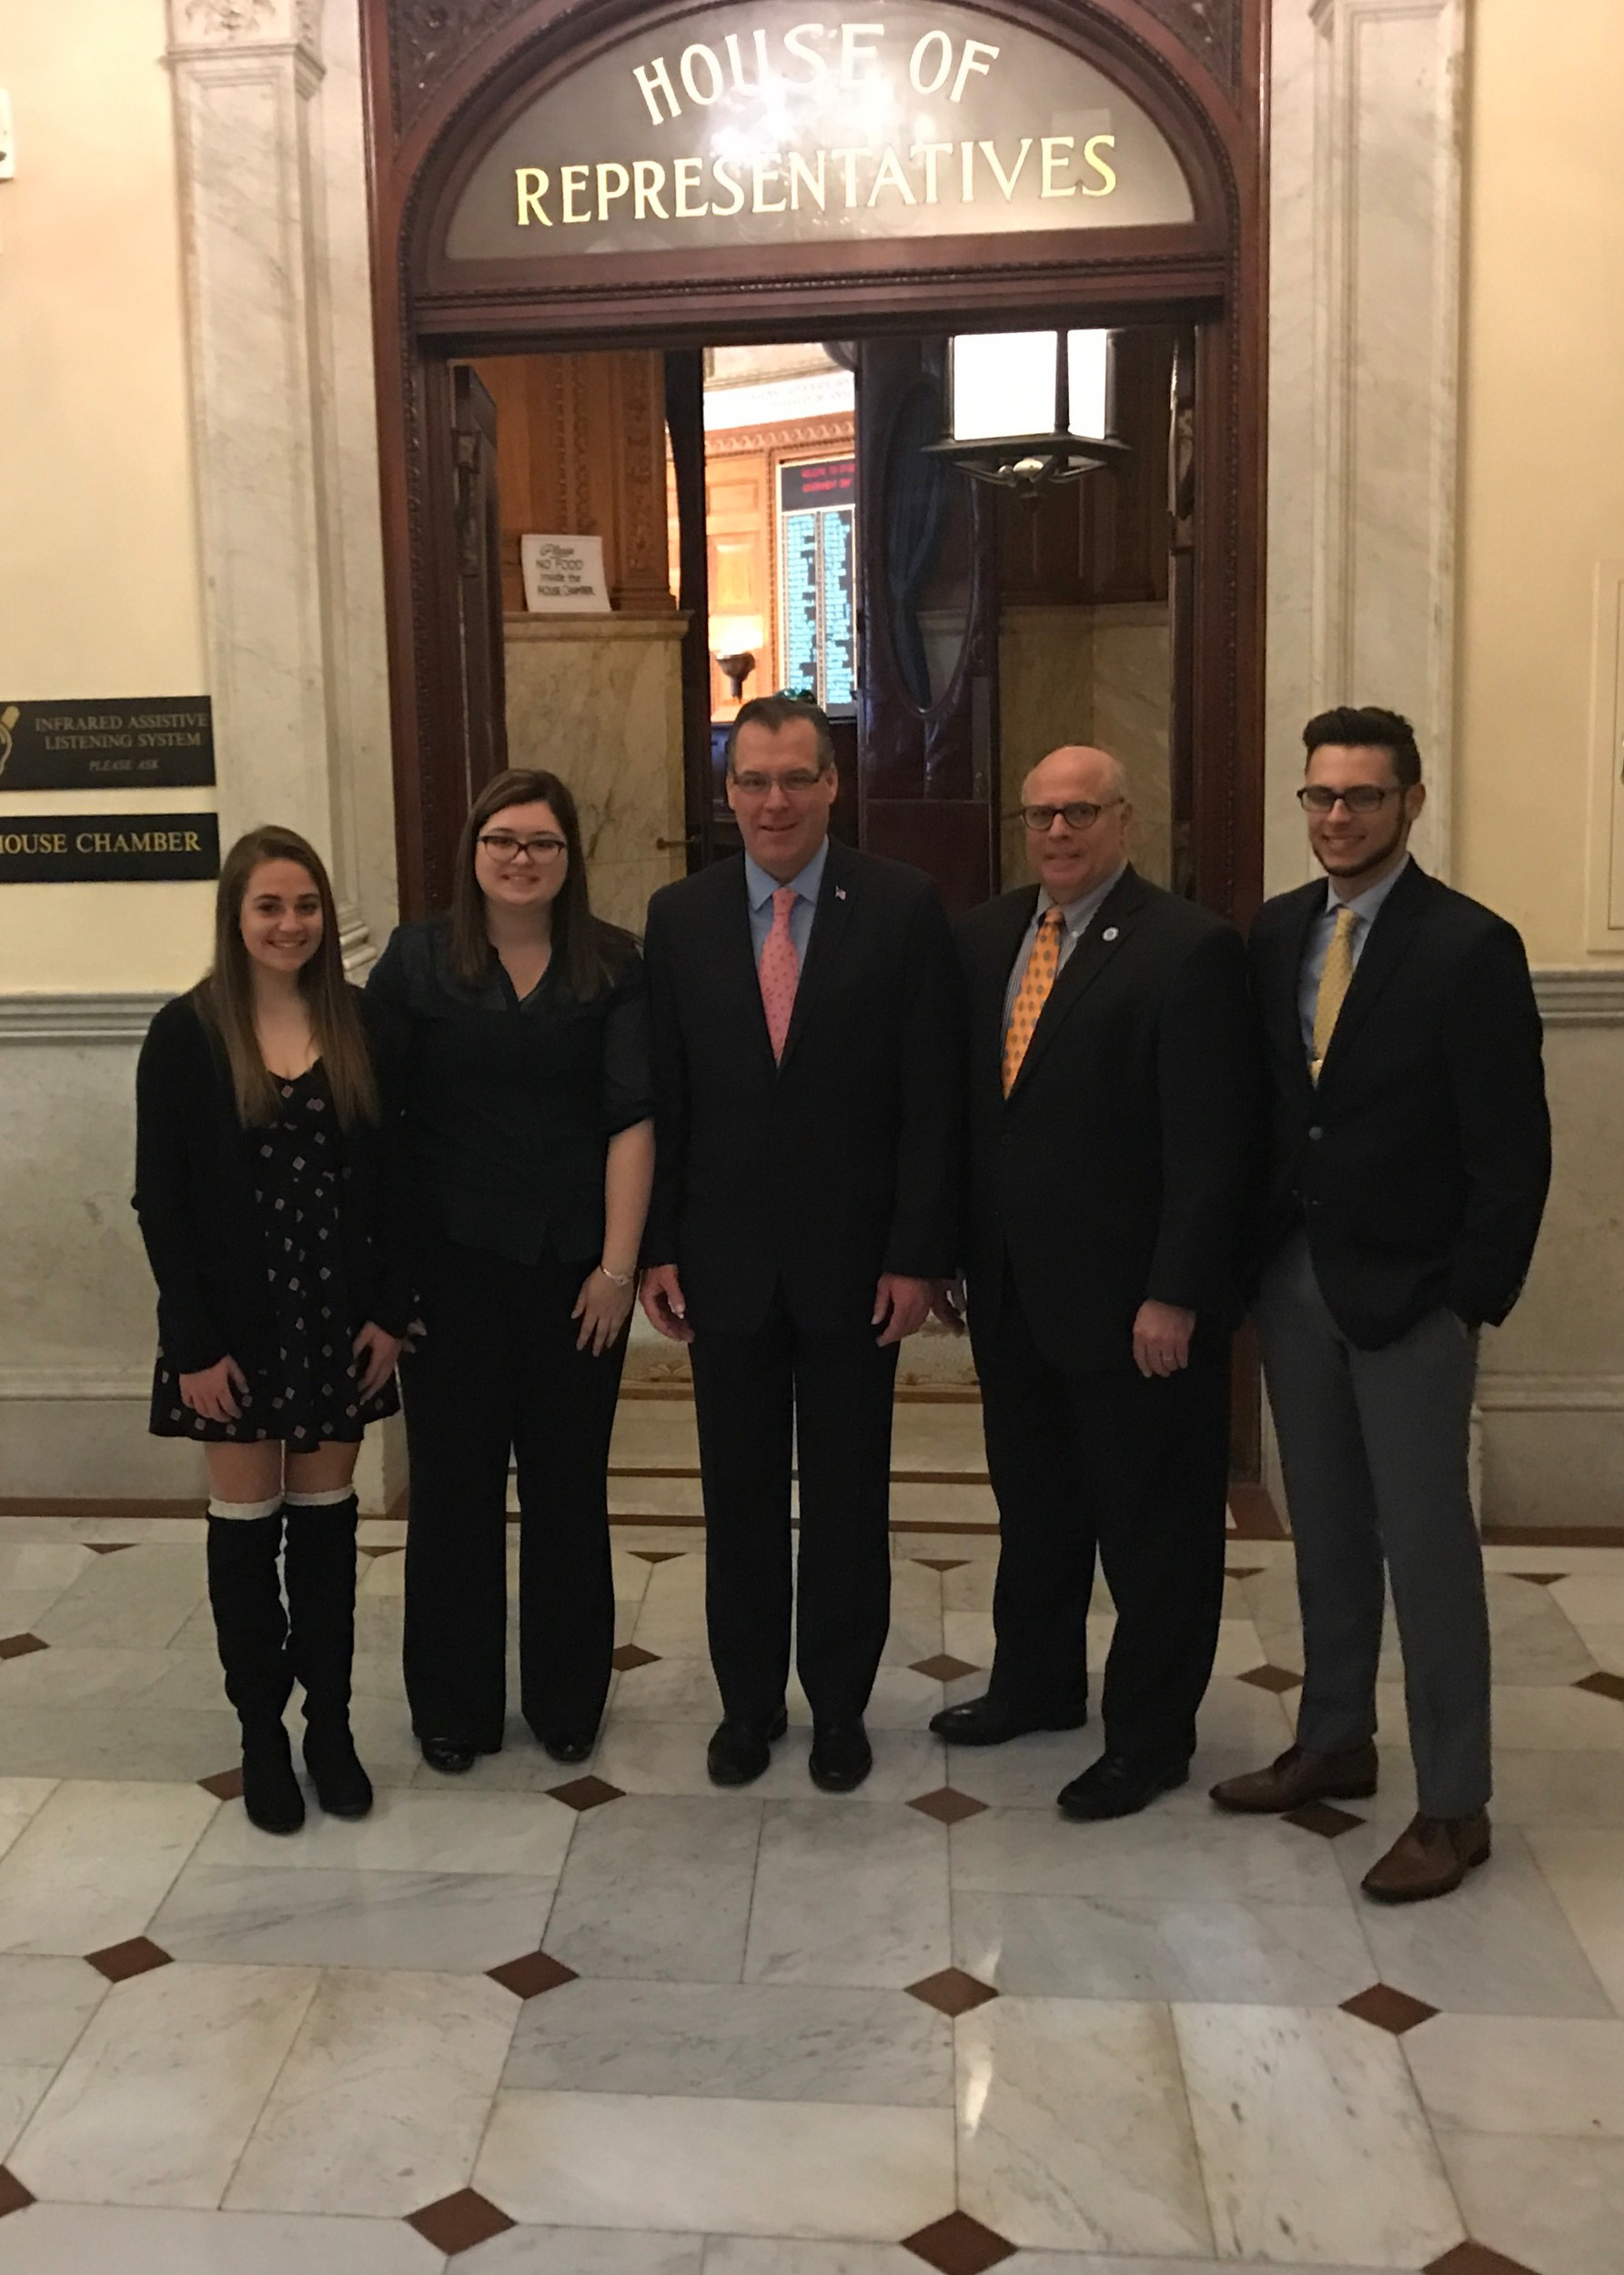 Abigail Martin and Robert Portway of Norton HS; Emma Johnson of Bristol Plymouth Reg. HS; Jackie Kucia of Dighton Rehoboth Reg. HS with JT and Representative Howitt